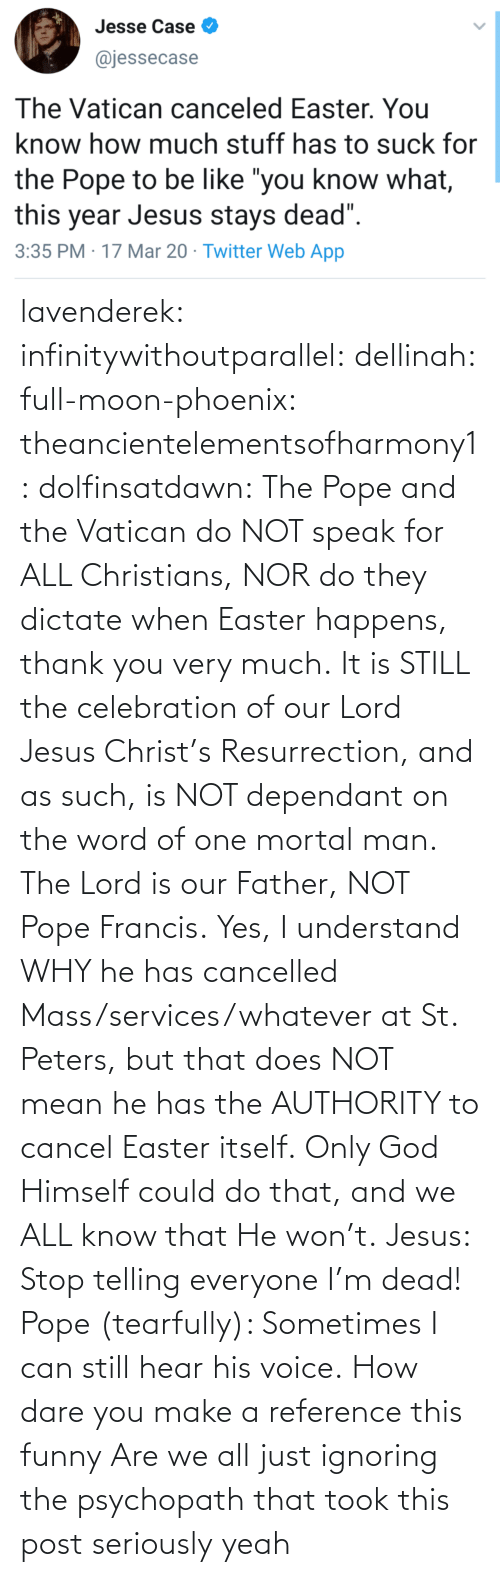 Nor: lavenderek: infinitywithoutparallel:  dellinah:  full-moon-phoenix:   theancientelementsofharmony1:  dolfinsatdawn:    The Pope and the Vatican do NOT speak for ALL Christians, NOR do they dictate when Easter happens, thank you very much. It is STILL the celebration of our Lord Jesus Christ's Resurrection, and as such, is NOT dependant on the word of one mortal man. The Lord is our Father, NOT Pope Francis. Yes, I understand WHY he has cancelled Mass/services/whatever at St. Peters, but that does NOT mean he has the AUTHORITY to cancel Easter itself. Only God Himself could do that, and we ALL know that He won't.    Jesus: Stop telling everyone I'm dead! Pope (tearfully): Sometimes I can still hear his voice.    How dare you make a reference this funny    Are we all just ignoring the psychopath that took this post seriously     yeah